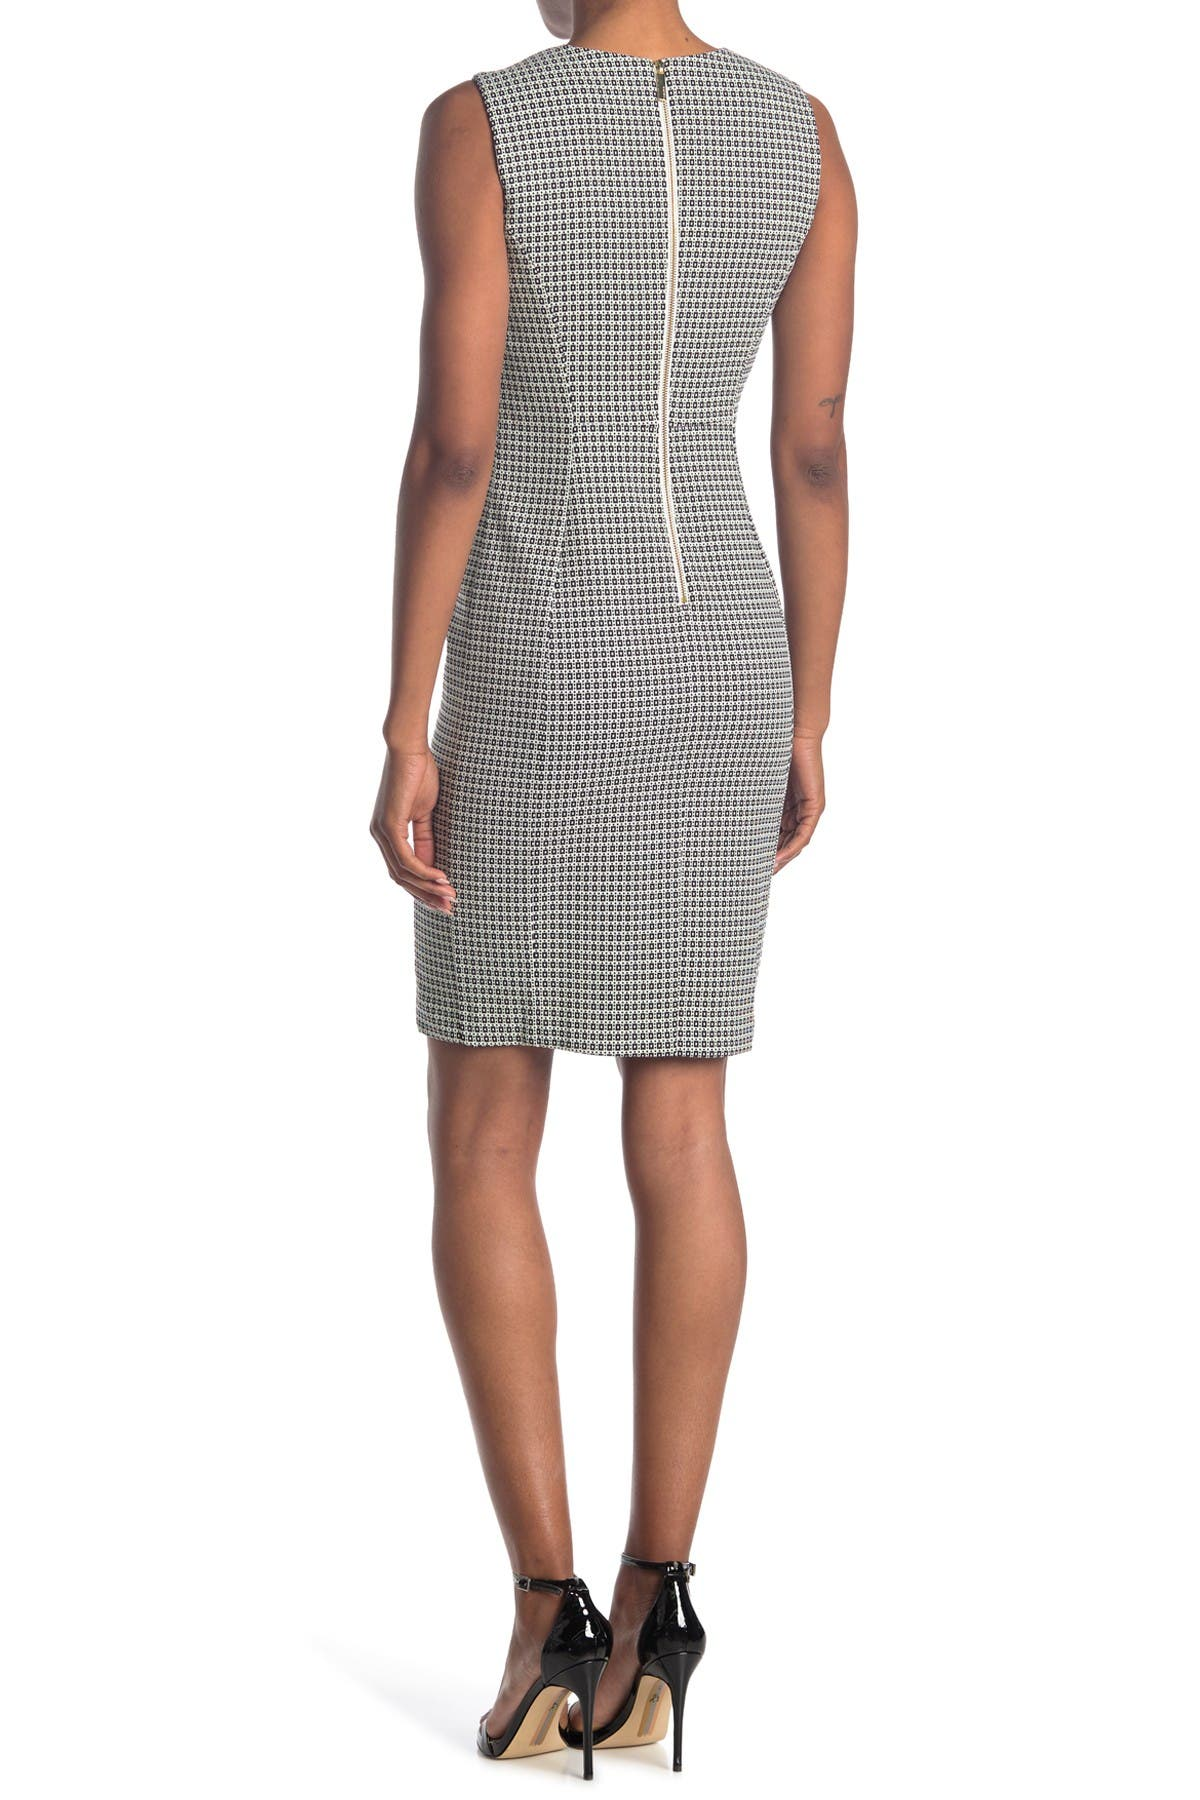 Image of Calvin Klein Geo Print Sleeveless Sheath Dress